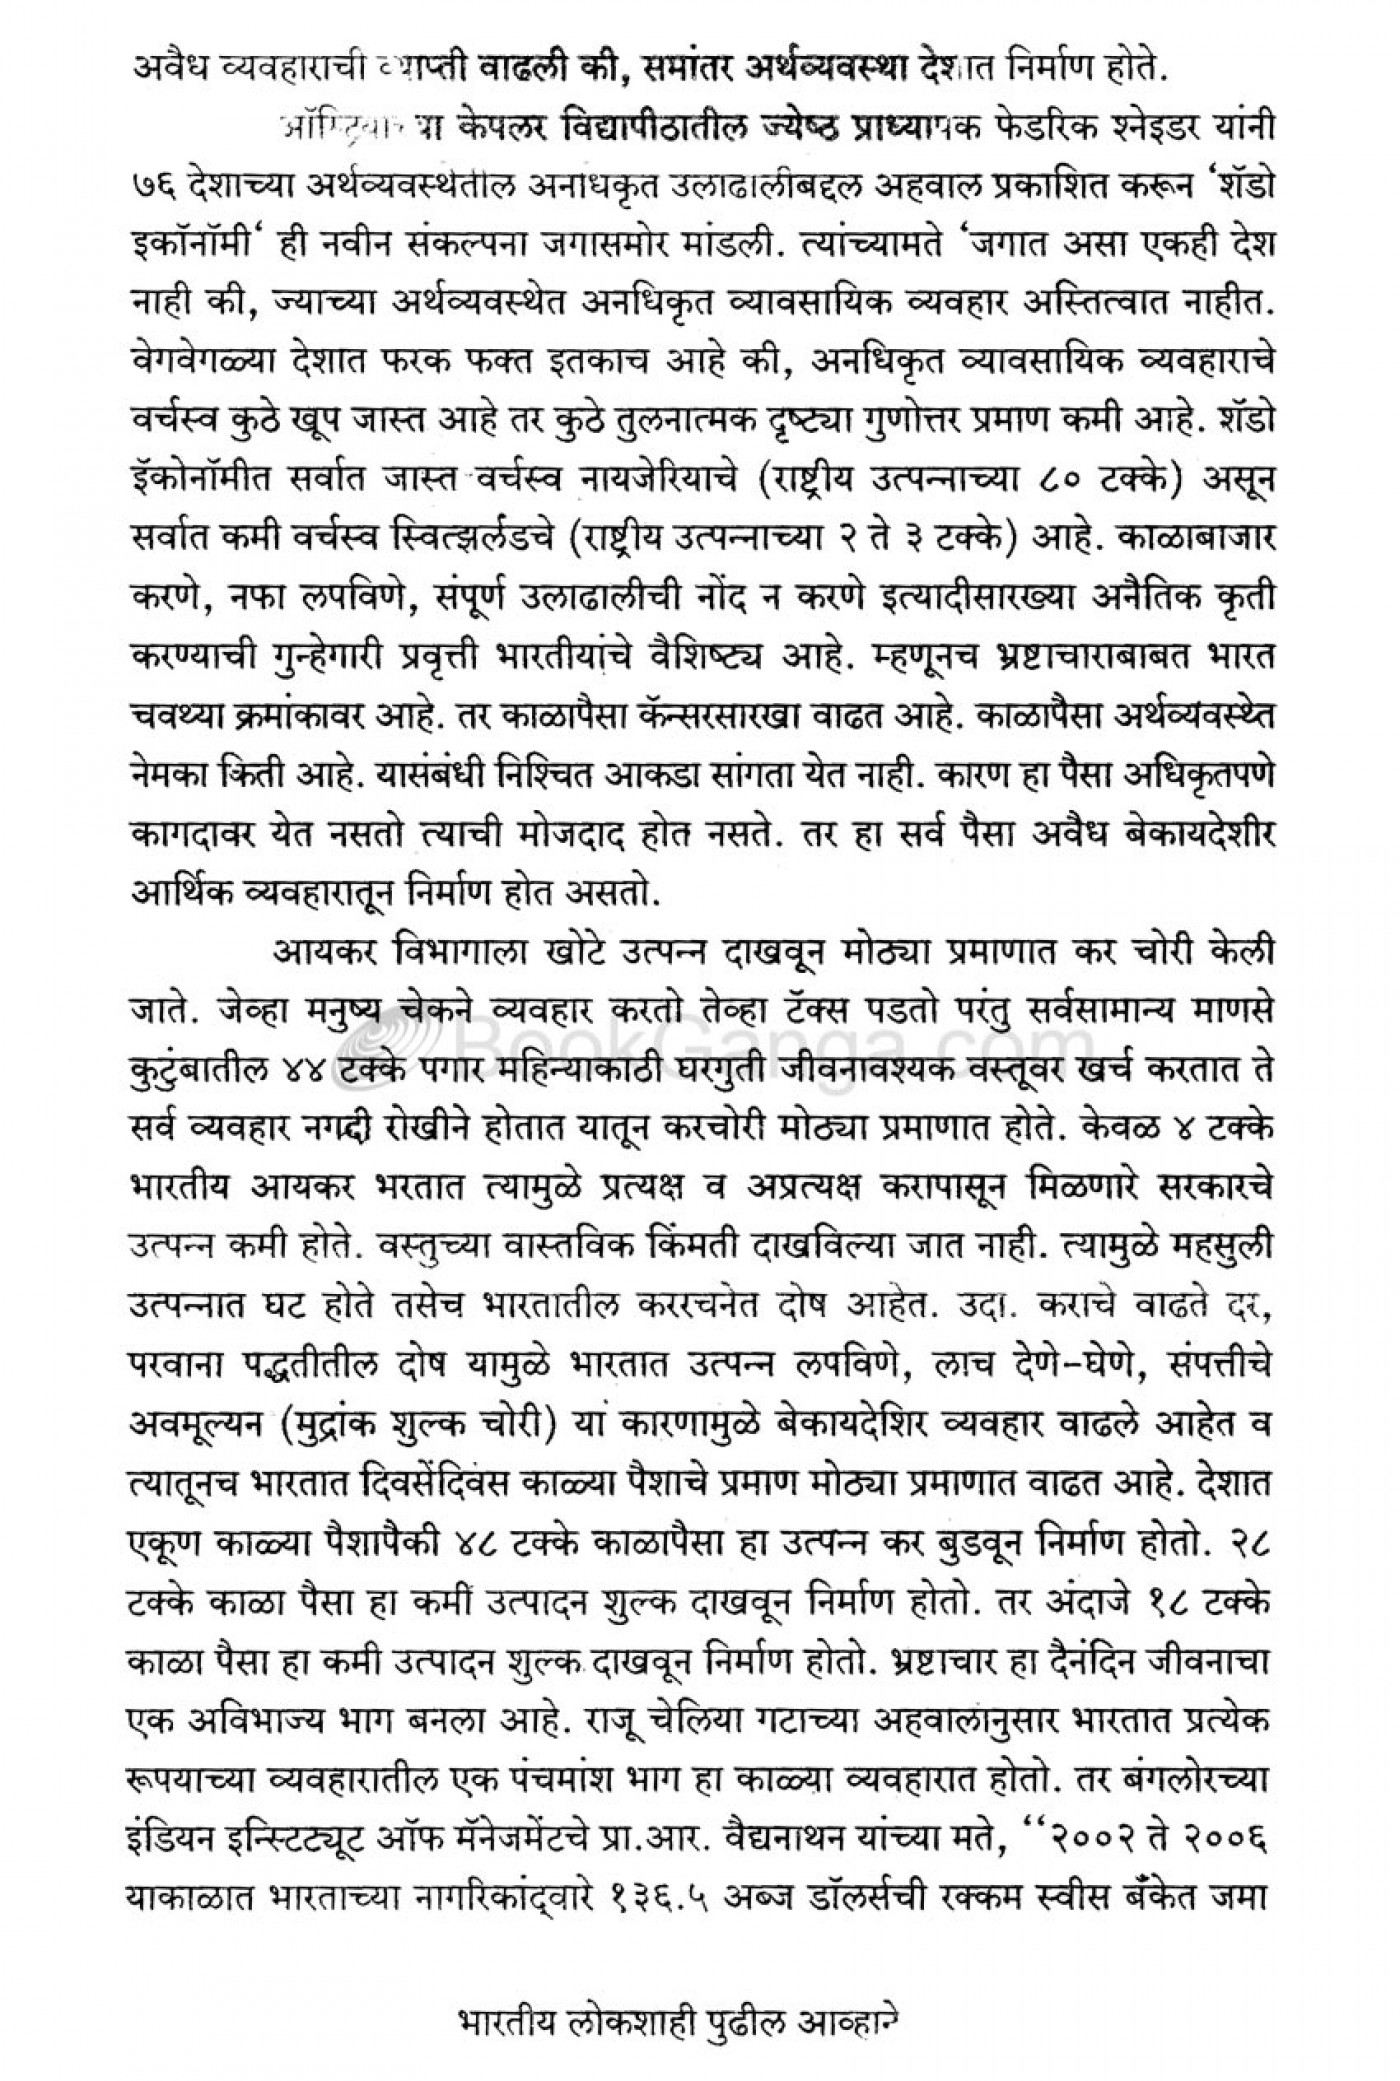 015 Marathi Essay On Rain Example Formidable First Day Of In Language Writing Rainy Season Wikipedia 1400